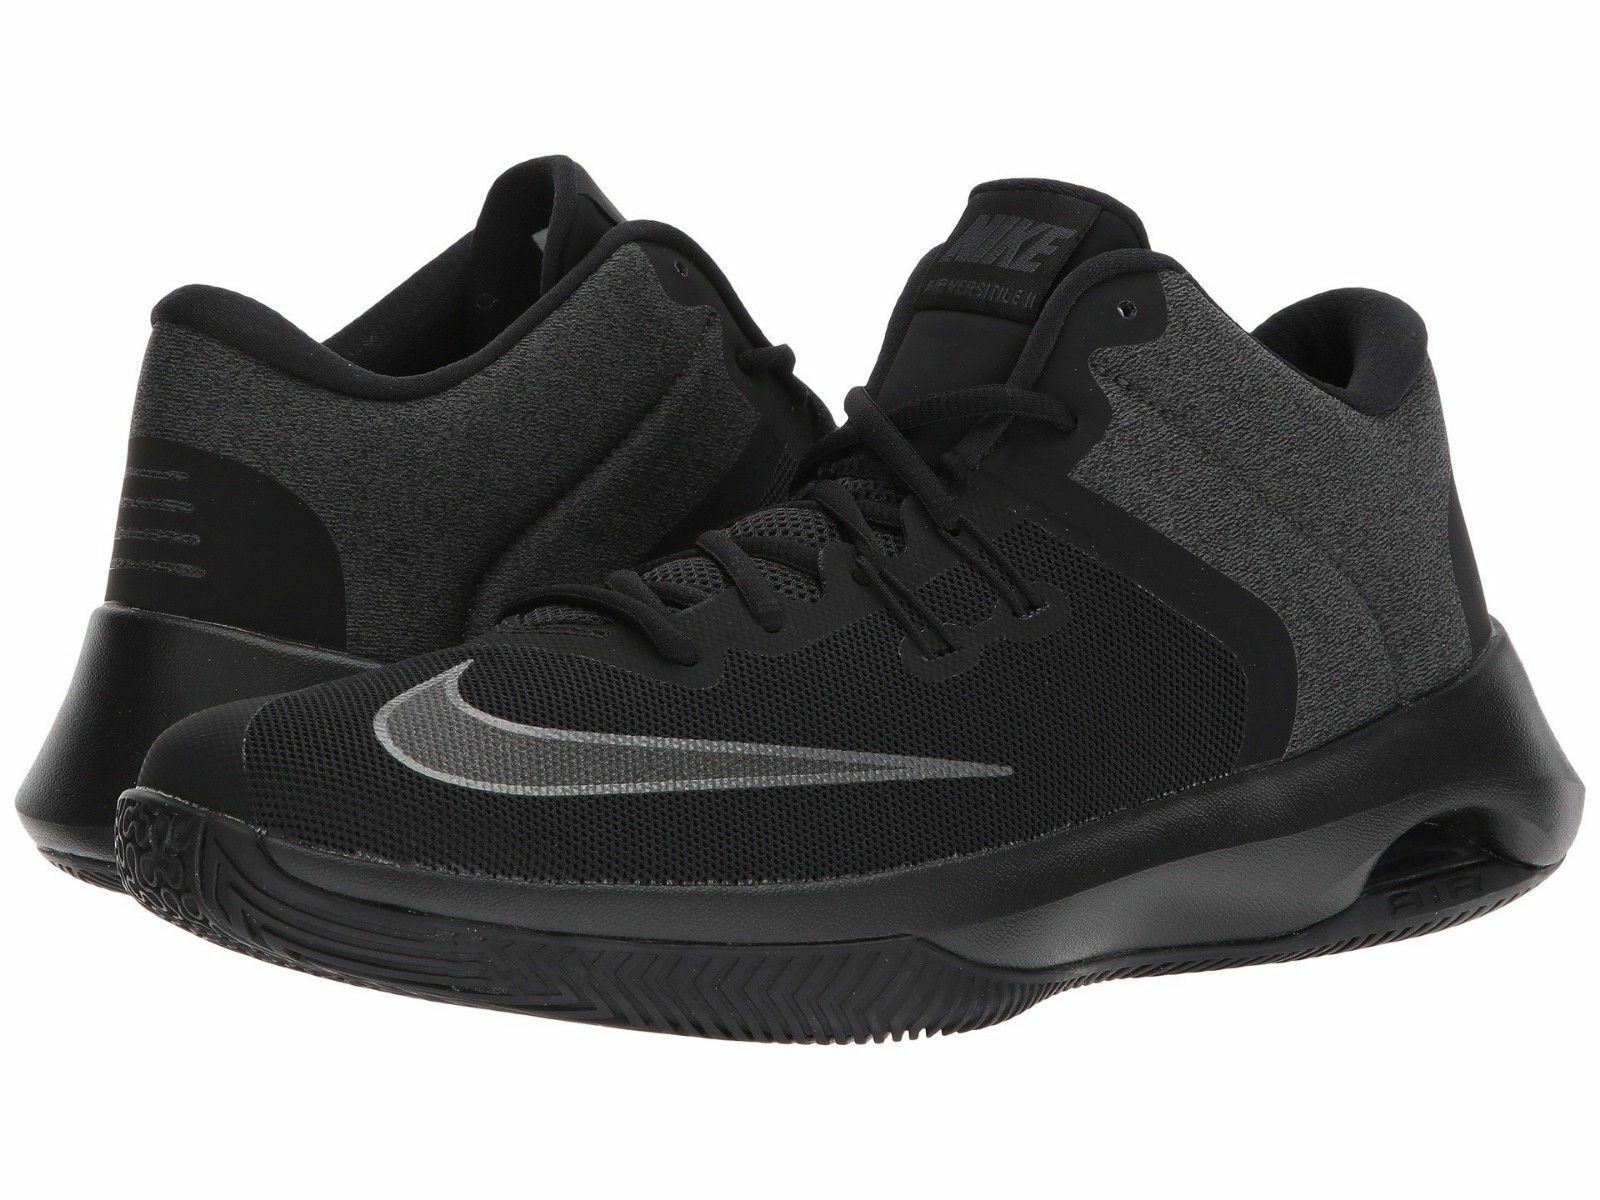 NIKE AIR VERSITILE II NBK LOW SNEAKERS MEN SHOES BLACK AA3819-002 SIZE 10 NEW